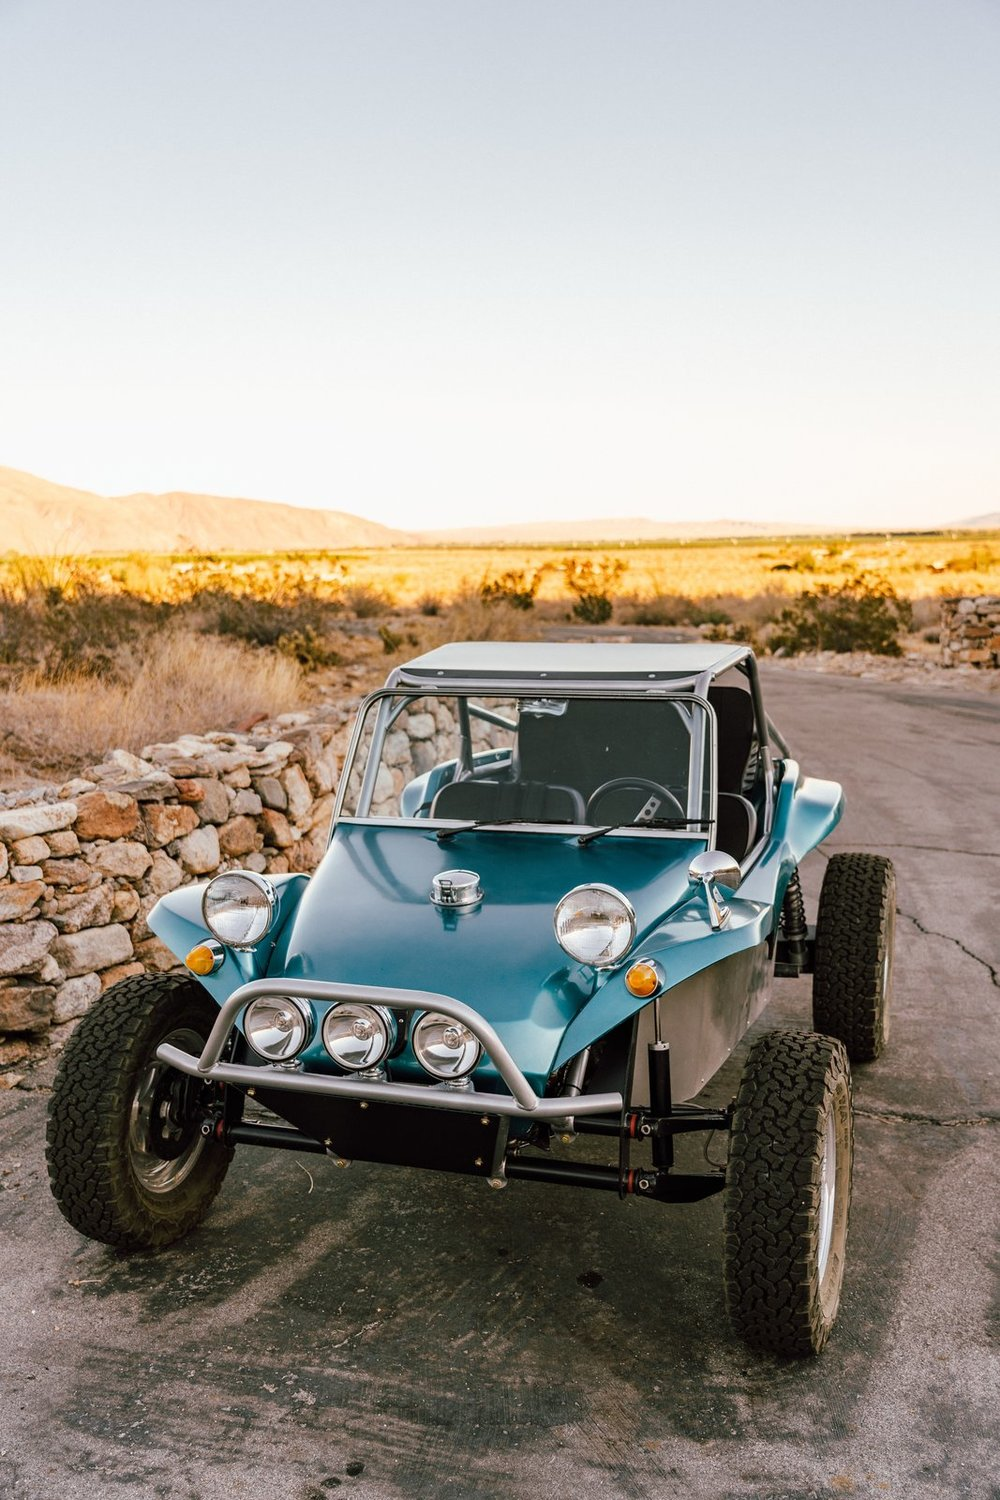 """""""The buggy is a 1972 VW Meyers Manx dune buggy. We bought it last year and had quite a bit of work done to it so it can handle the rugged desert terrain with ease. We added a new frame, new suspension, new tires, new wiring, and a roll cage. The engine and the body are the only original elements."""" (Tim Melideo)"""